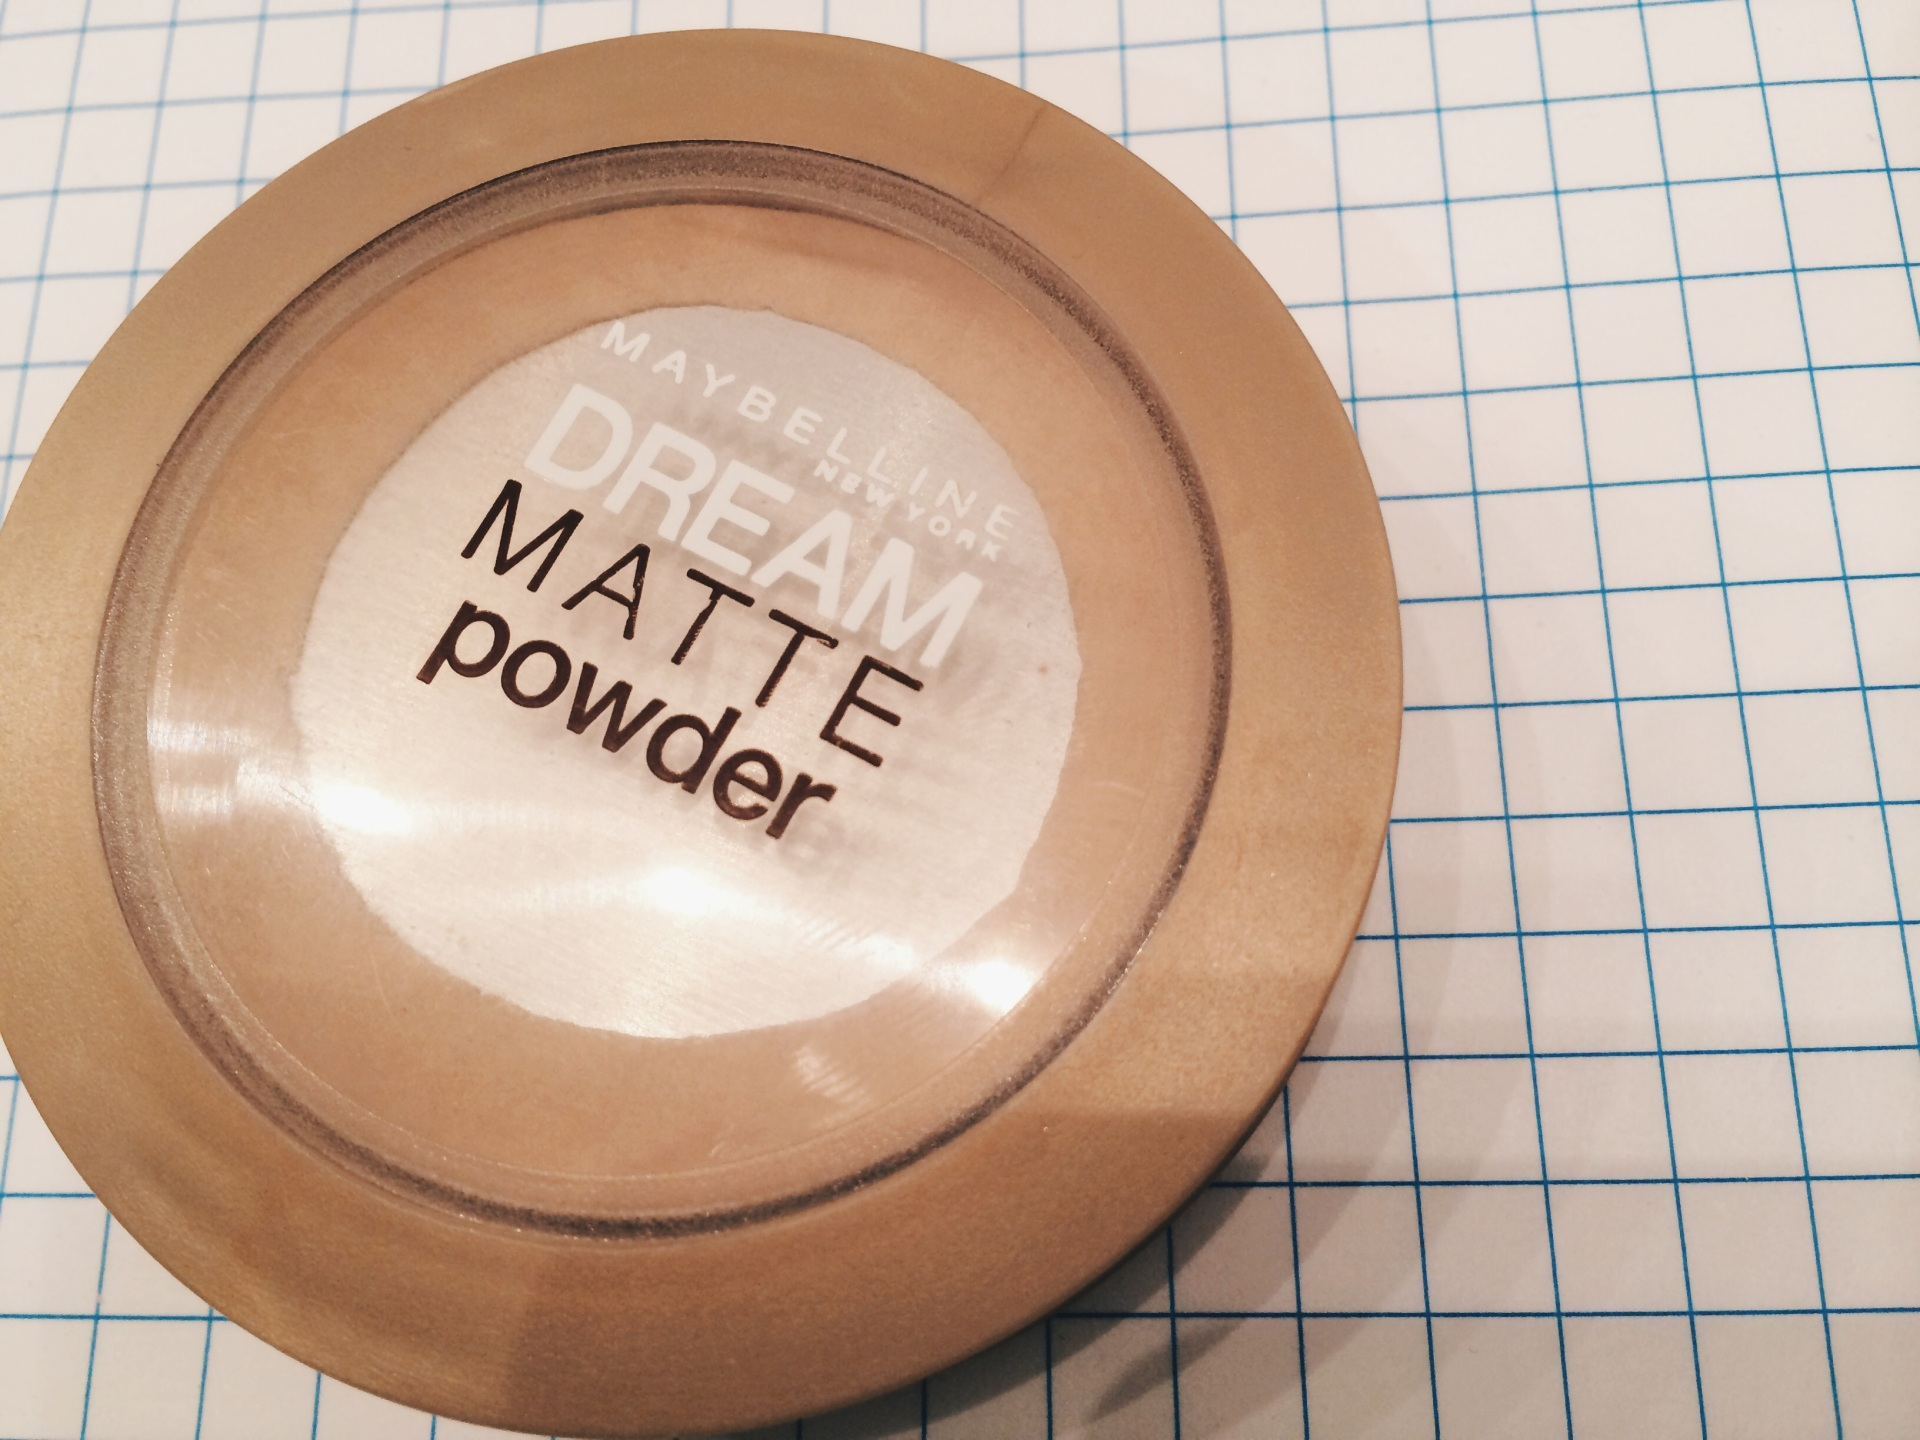 Maybelline Dream Matte Powder All You Need is Blush